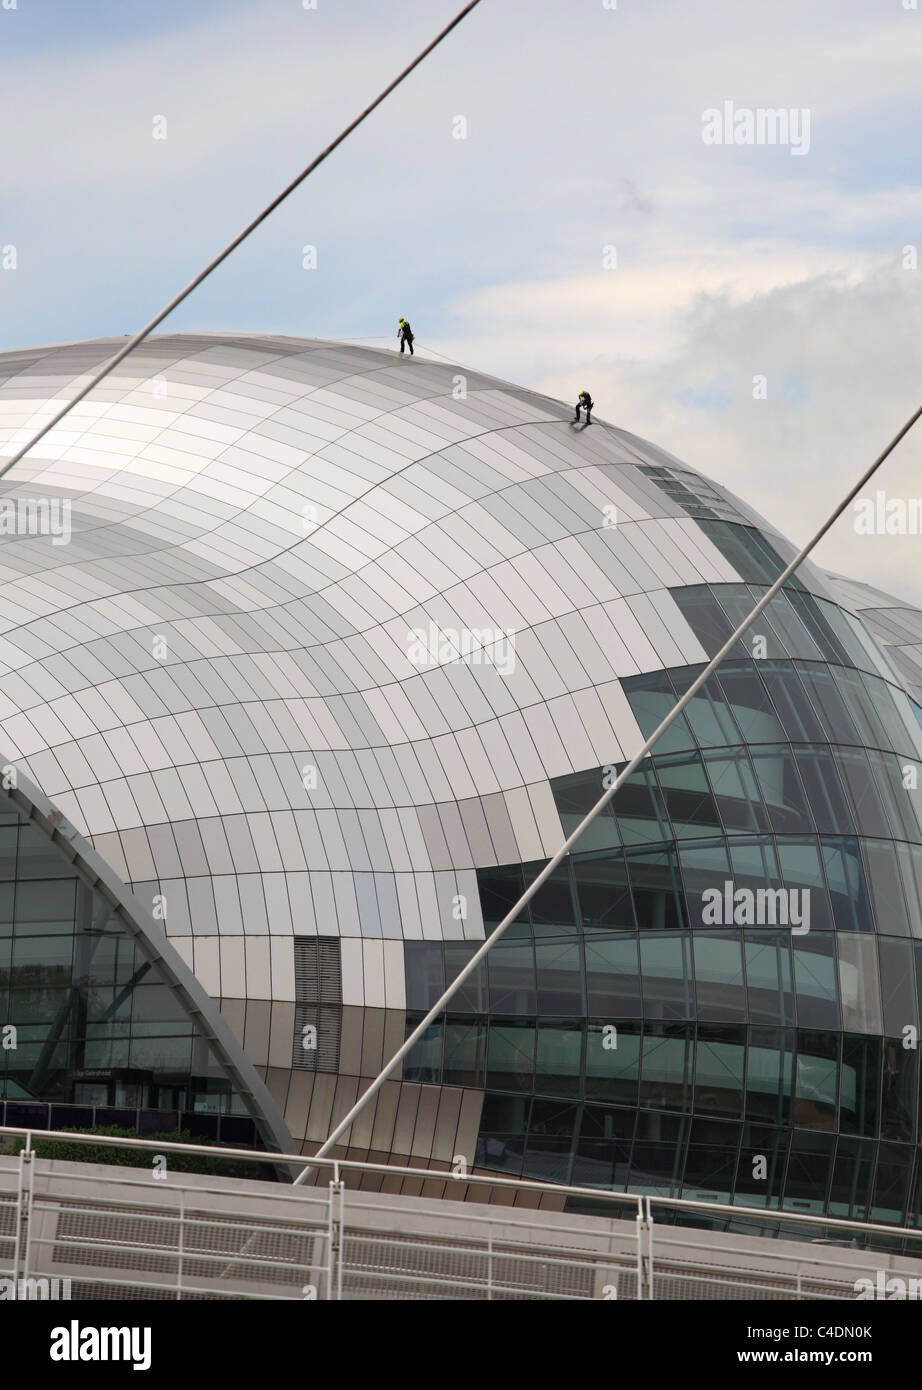 Window cleaners work by abseiling down the walls of the Sage concert hall in Gateshead, North East England, UK Stock Photo